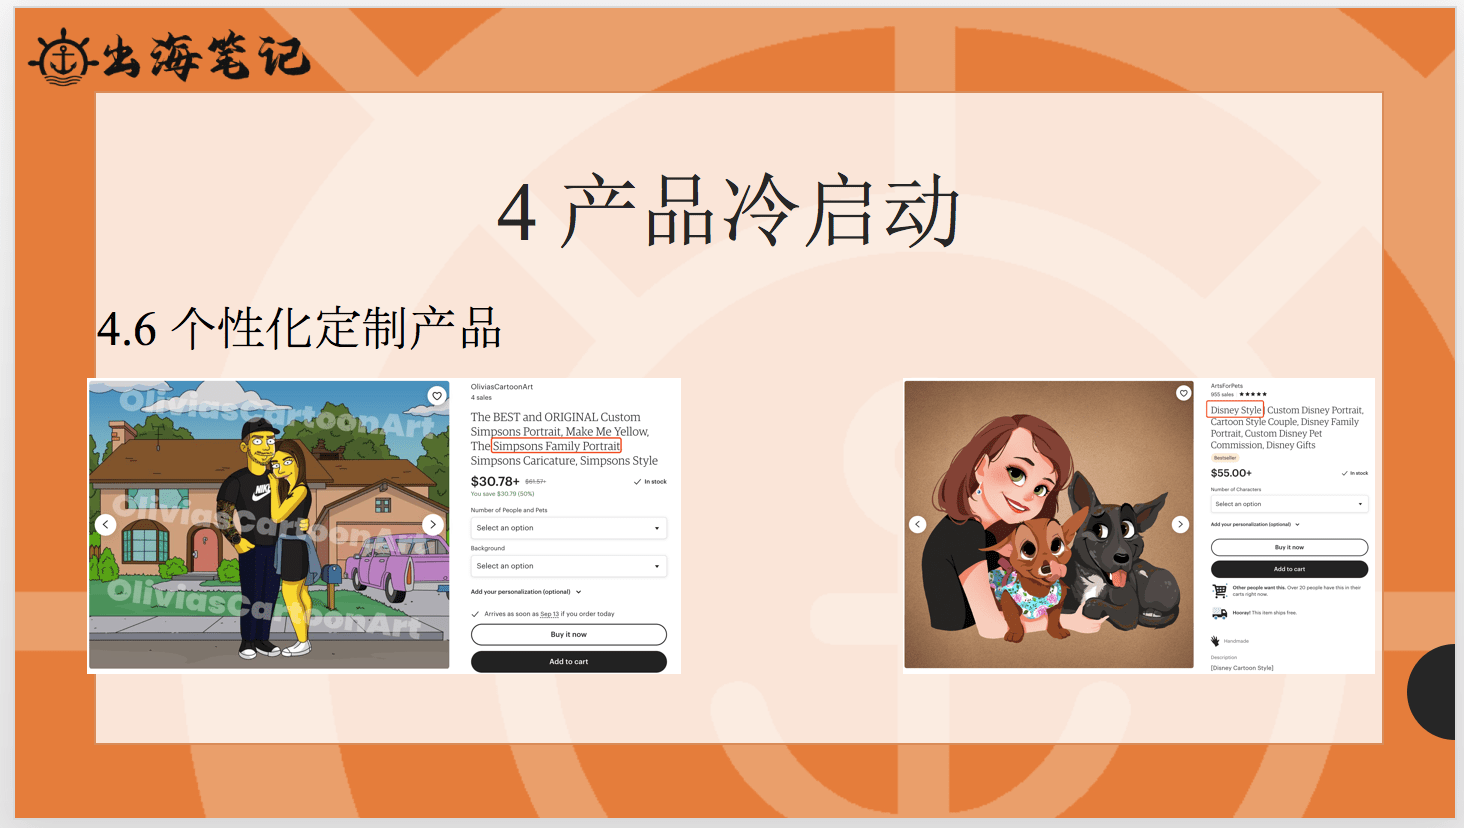 ../../../../../Library/Containers/com.tencent.xinWeChat/Data/Library/Application%20Support/com.tencent.xinWeChat/2.0b4.0.9/751a8330357af107f5510d92bd4cae49/Message/MessageTemp/7f5b1409289e7572d6932dc34cf84534/Image/1831600779408_.pic_hd